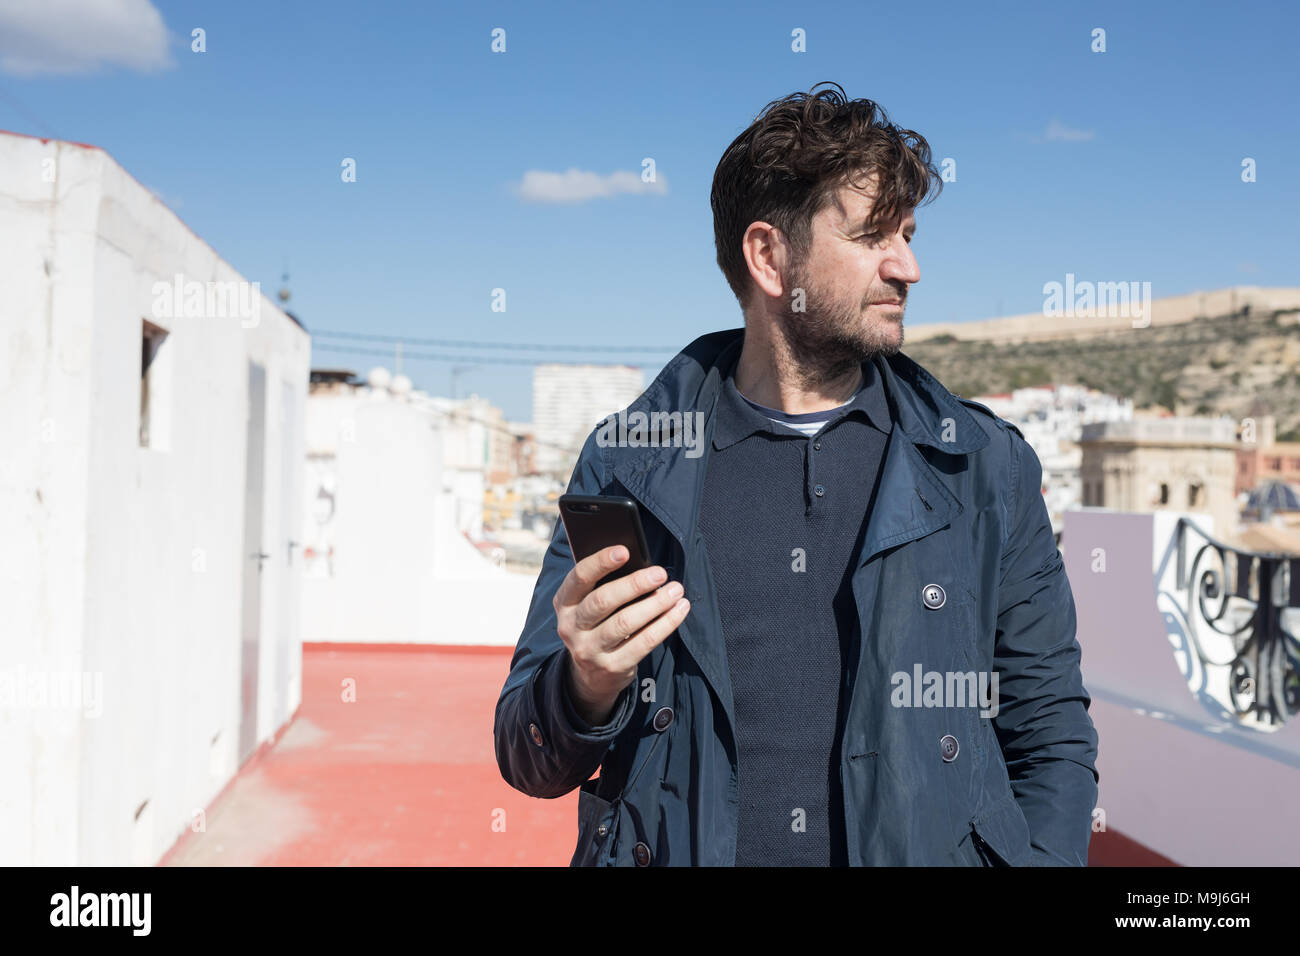 portrait of 45 year old man with blue jacket and mobile in his hand - Stock Image